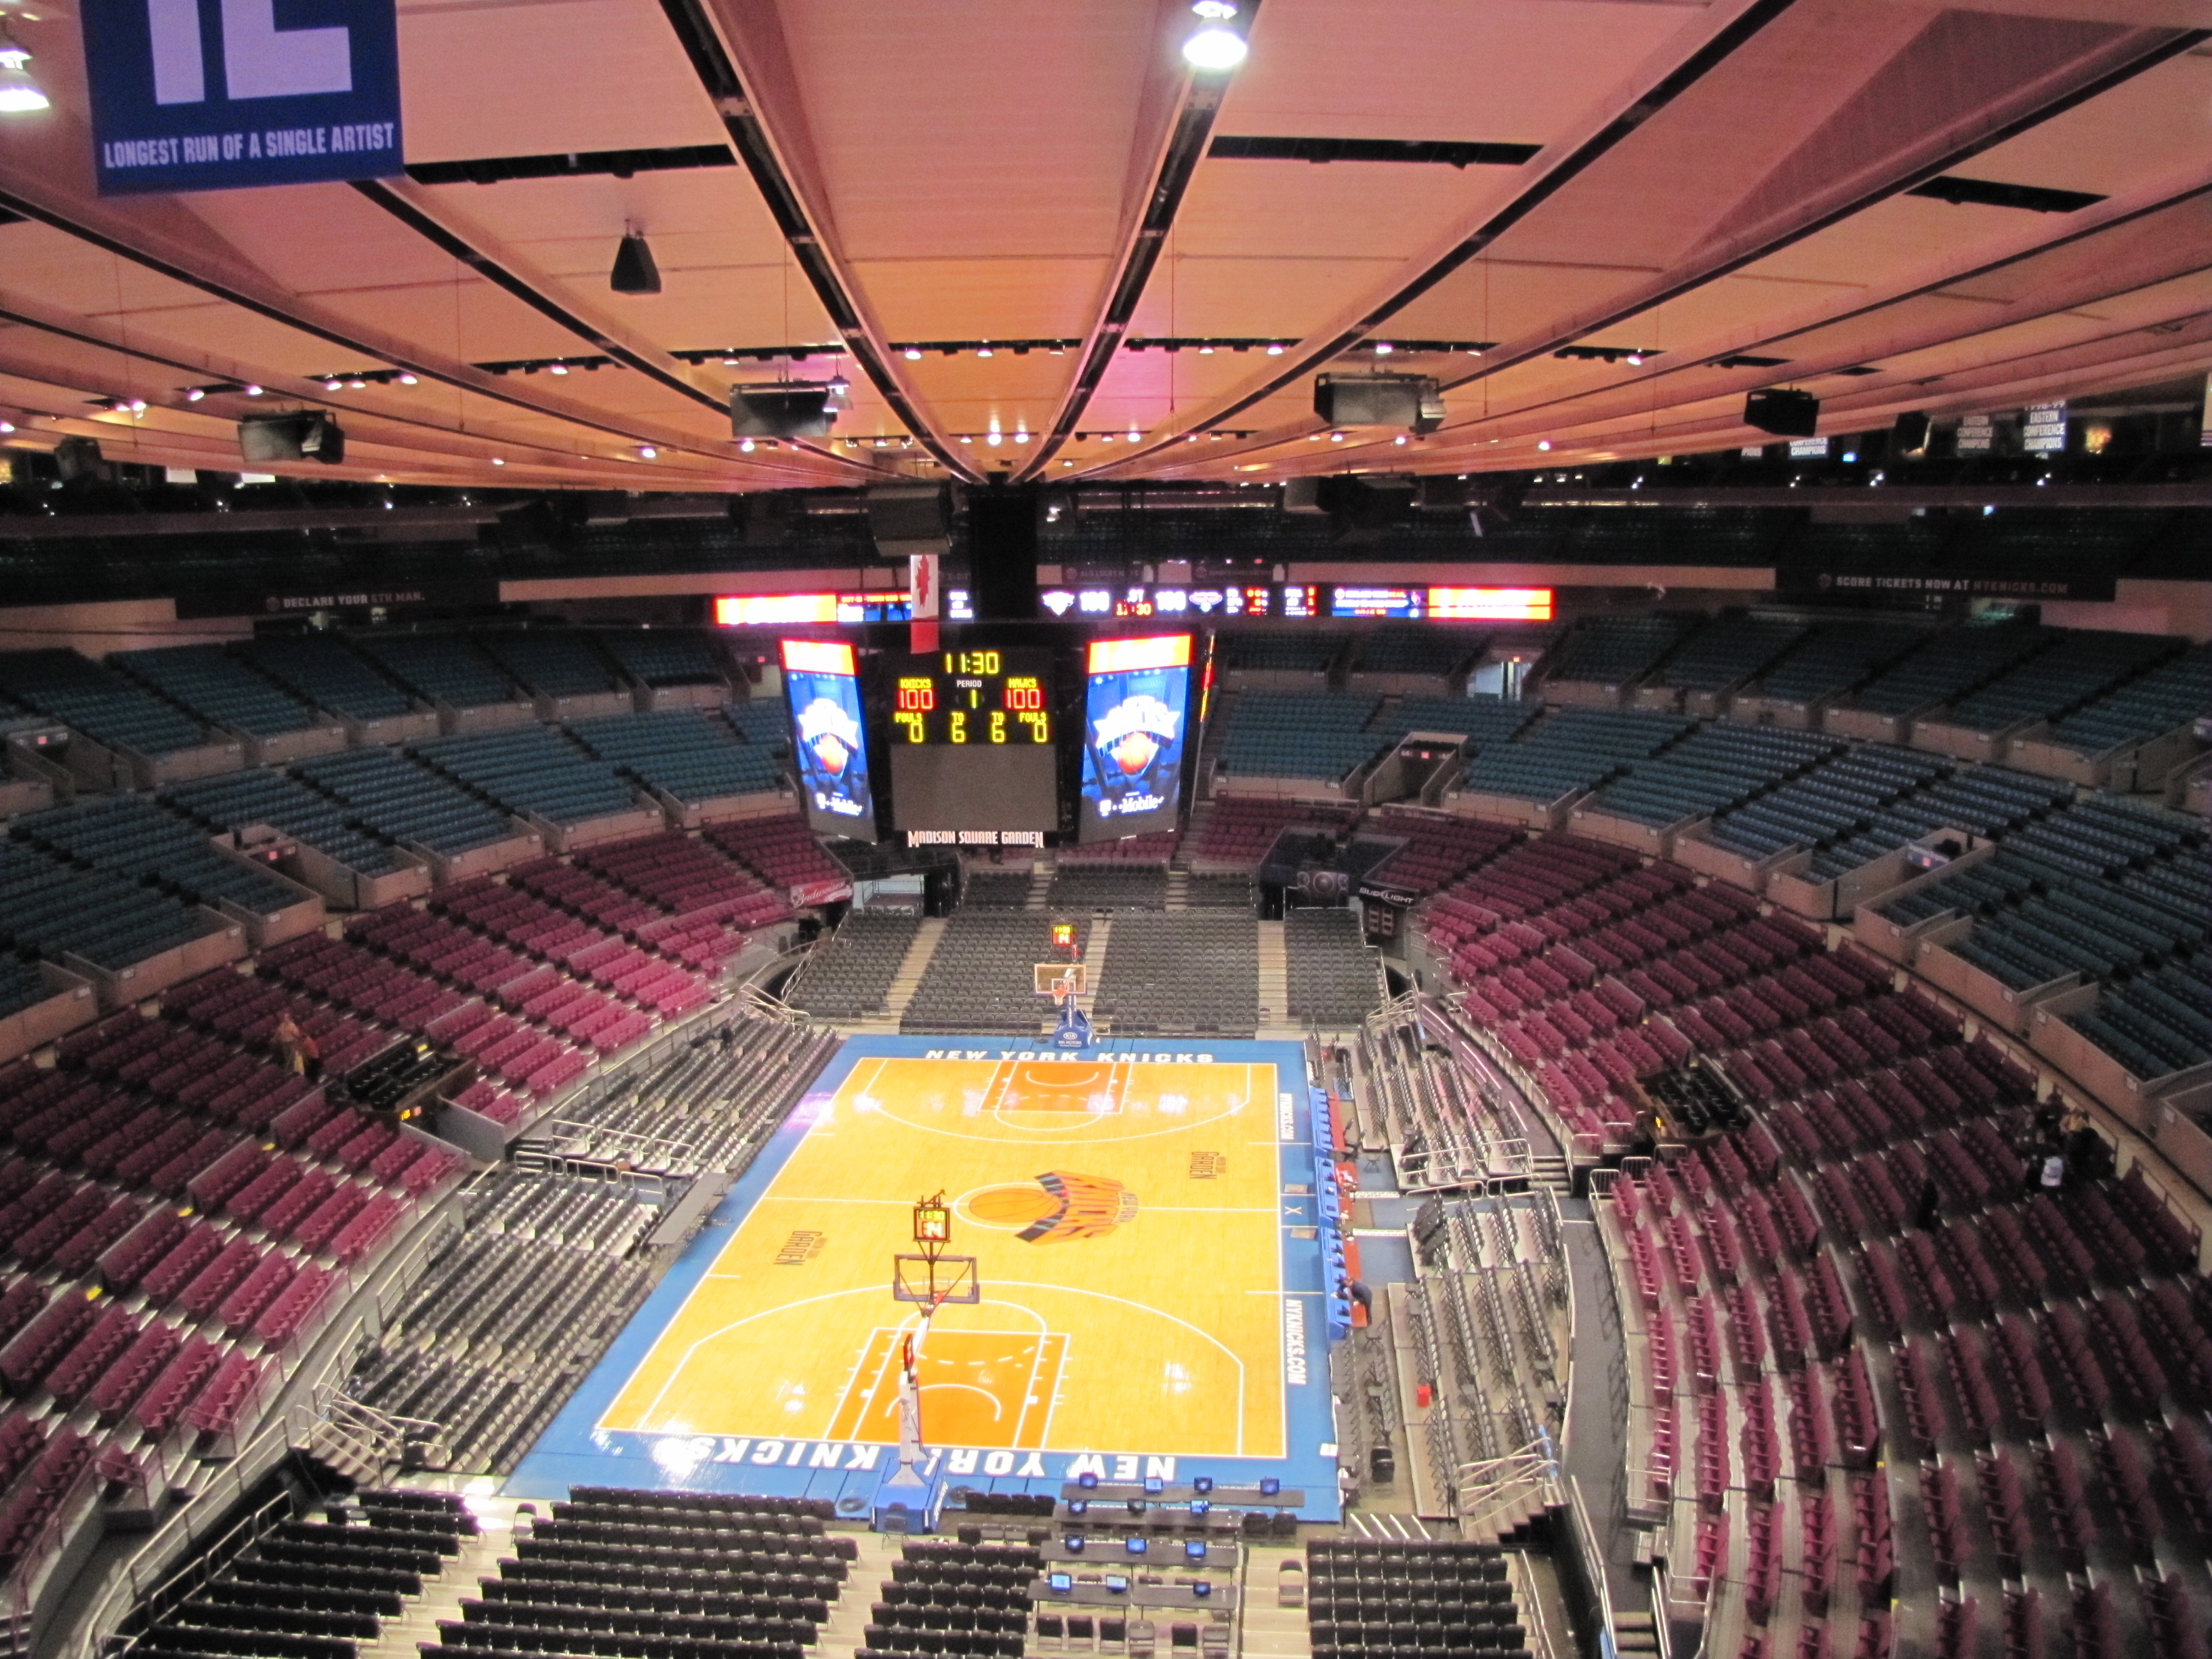 http://upload.wikimedia.org/wikipedia/commons/c/c6/Madison_Square_Garden_(4432377106).jpg